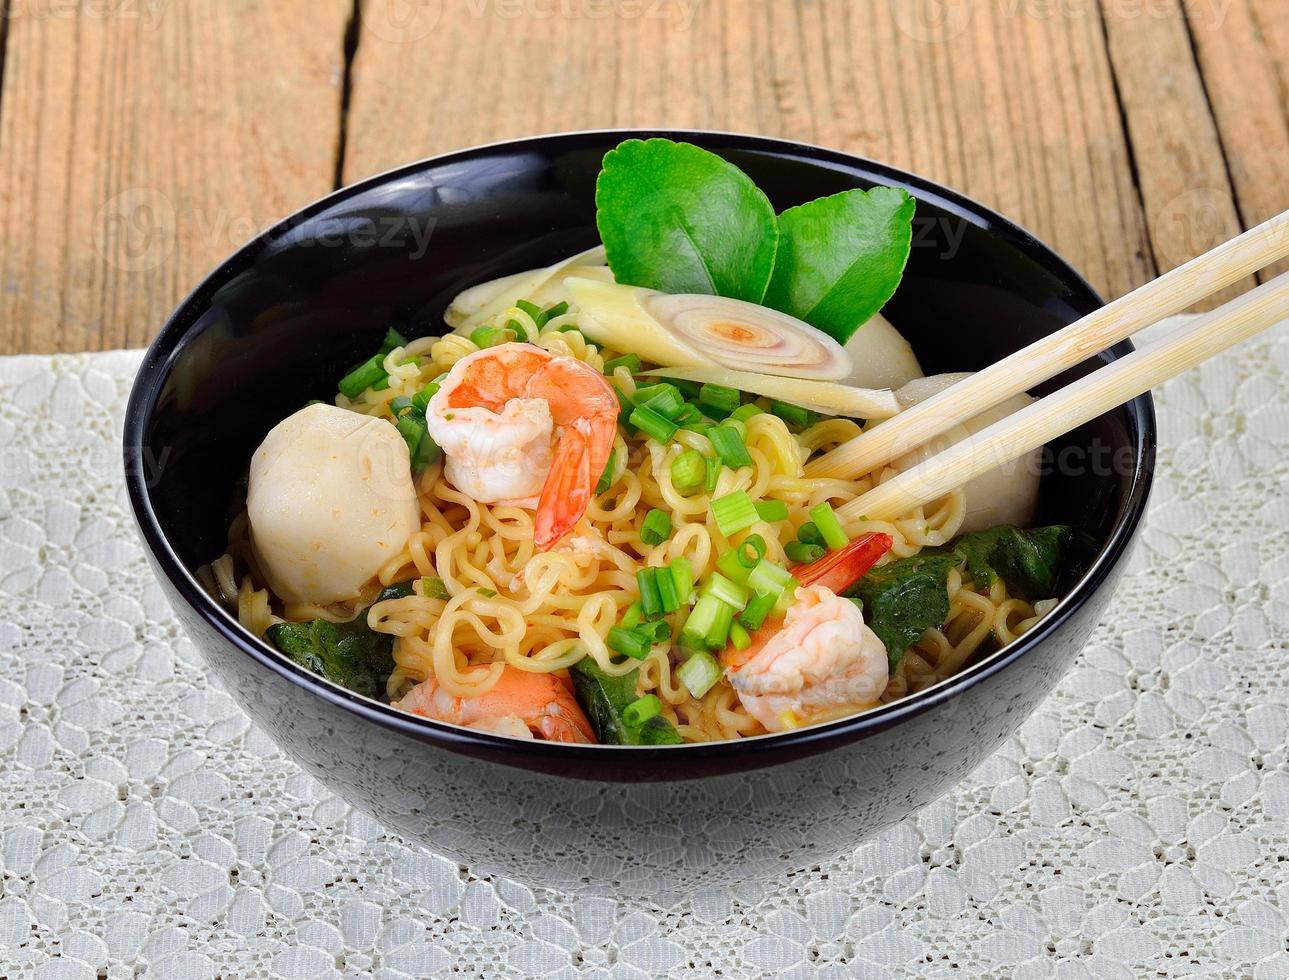 Hot and spicy instant noodle with shrimp and vegetable photo